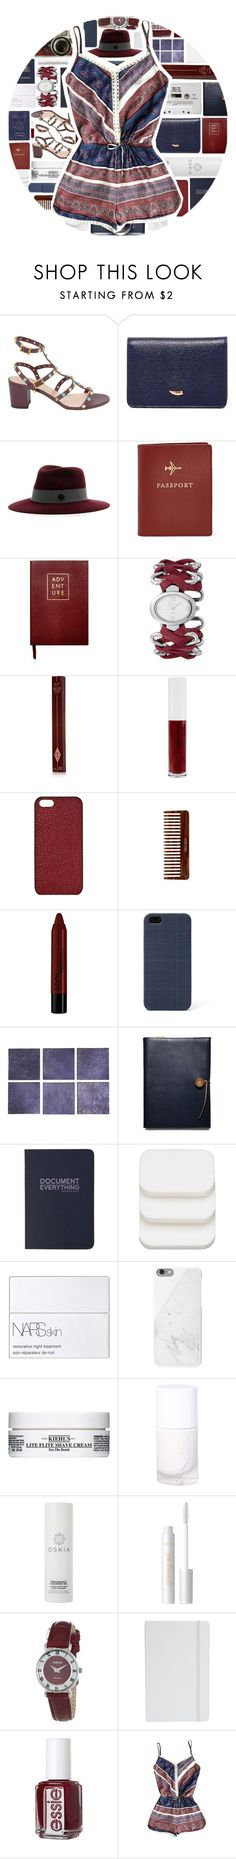 """""""Romper"""" by xgracieeee ❤ liked on Polyvore featuring Valentino, Tusk, MAISON MICHEL PARIS, Leica, FOSSIL, Sloane Stationery, Freelook, Charlotte Tilbury, Obsessive Compulsive Cosmetics and Maison Takuya"""